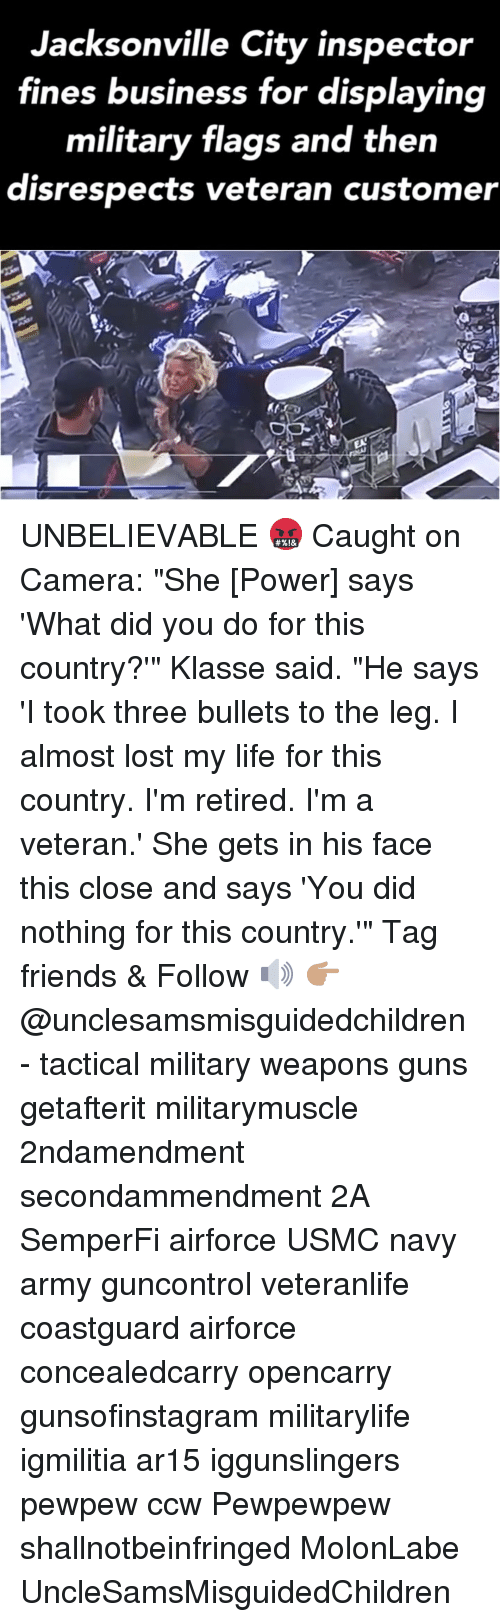 """Friends, Guns, and Life: Jacksonville City inspector  fines business for displaying  military flags and then  disrespects veteran customer UNBELIEVABLE 🤬 Caught on Camera: """"She [Power] says 'What did you do for this country?'"""" Klasse said. """"He says 'I took three bullets to the leg. I almost lost my life for this country. I'm retired. I'm a veteran.' She gets in his face this close and says 'You did nothing for this country.'"""" Tag friends & Follow 🔊 👉🏽 @unclesamsmisguidedchildren - tactical military weapons guns getafterit militarymuscle 2ndamendment secondammendment 2A SemperFi airforce USMC navy army guncontrol veteranlife coastguard airforce concealedcarry opencarry gunsofinstagram militarylife igmilitia ar15 iggunslingers pewpew ccw Pewpewpew shallnotbeinfringed MolonLabe UncleSamsMisguidedChildren"""